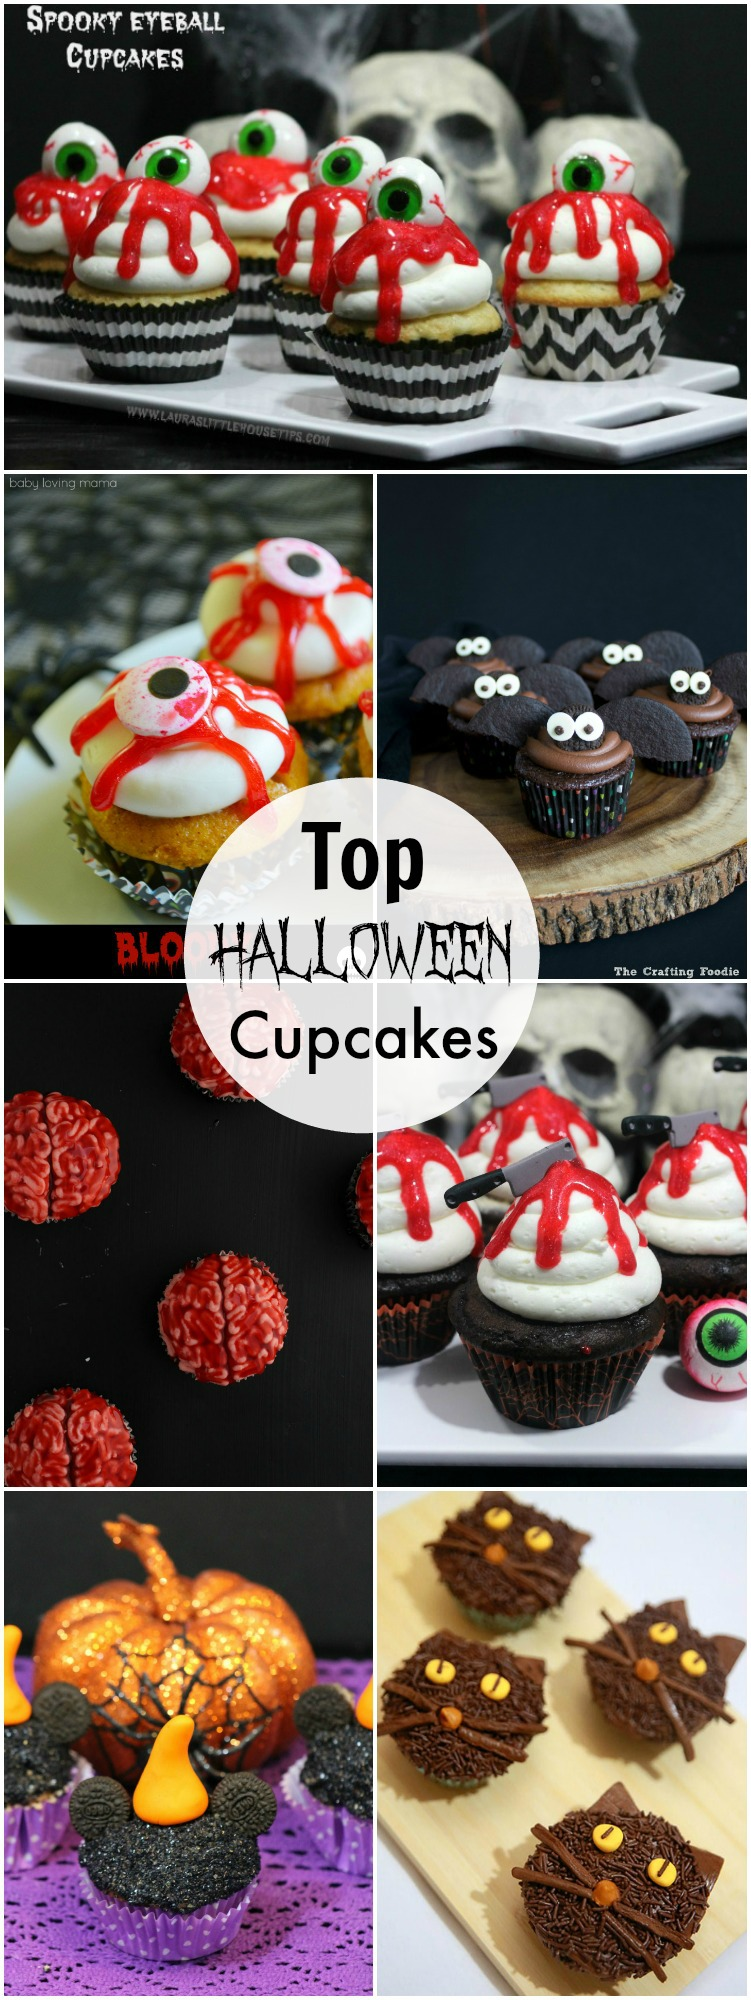 Top Halloween Cupcakes that are the perfect cupcakes for any Halloween party.